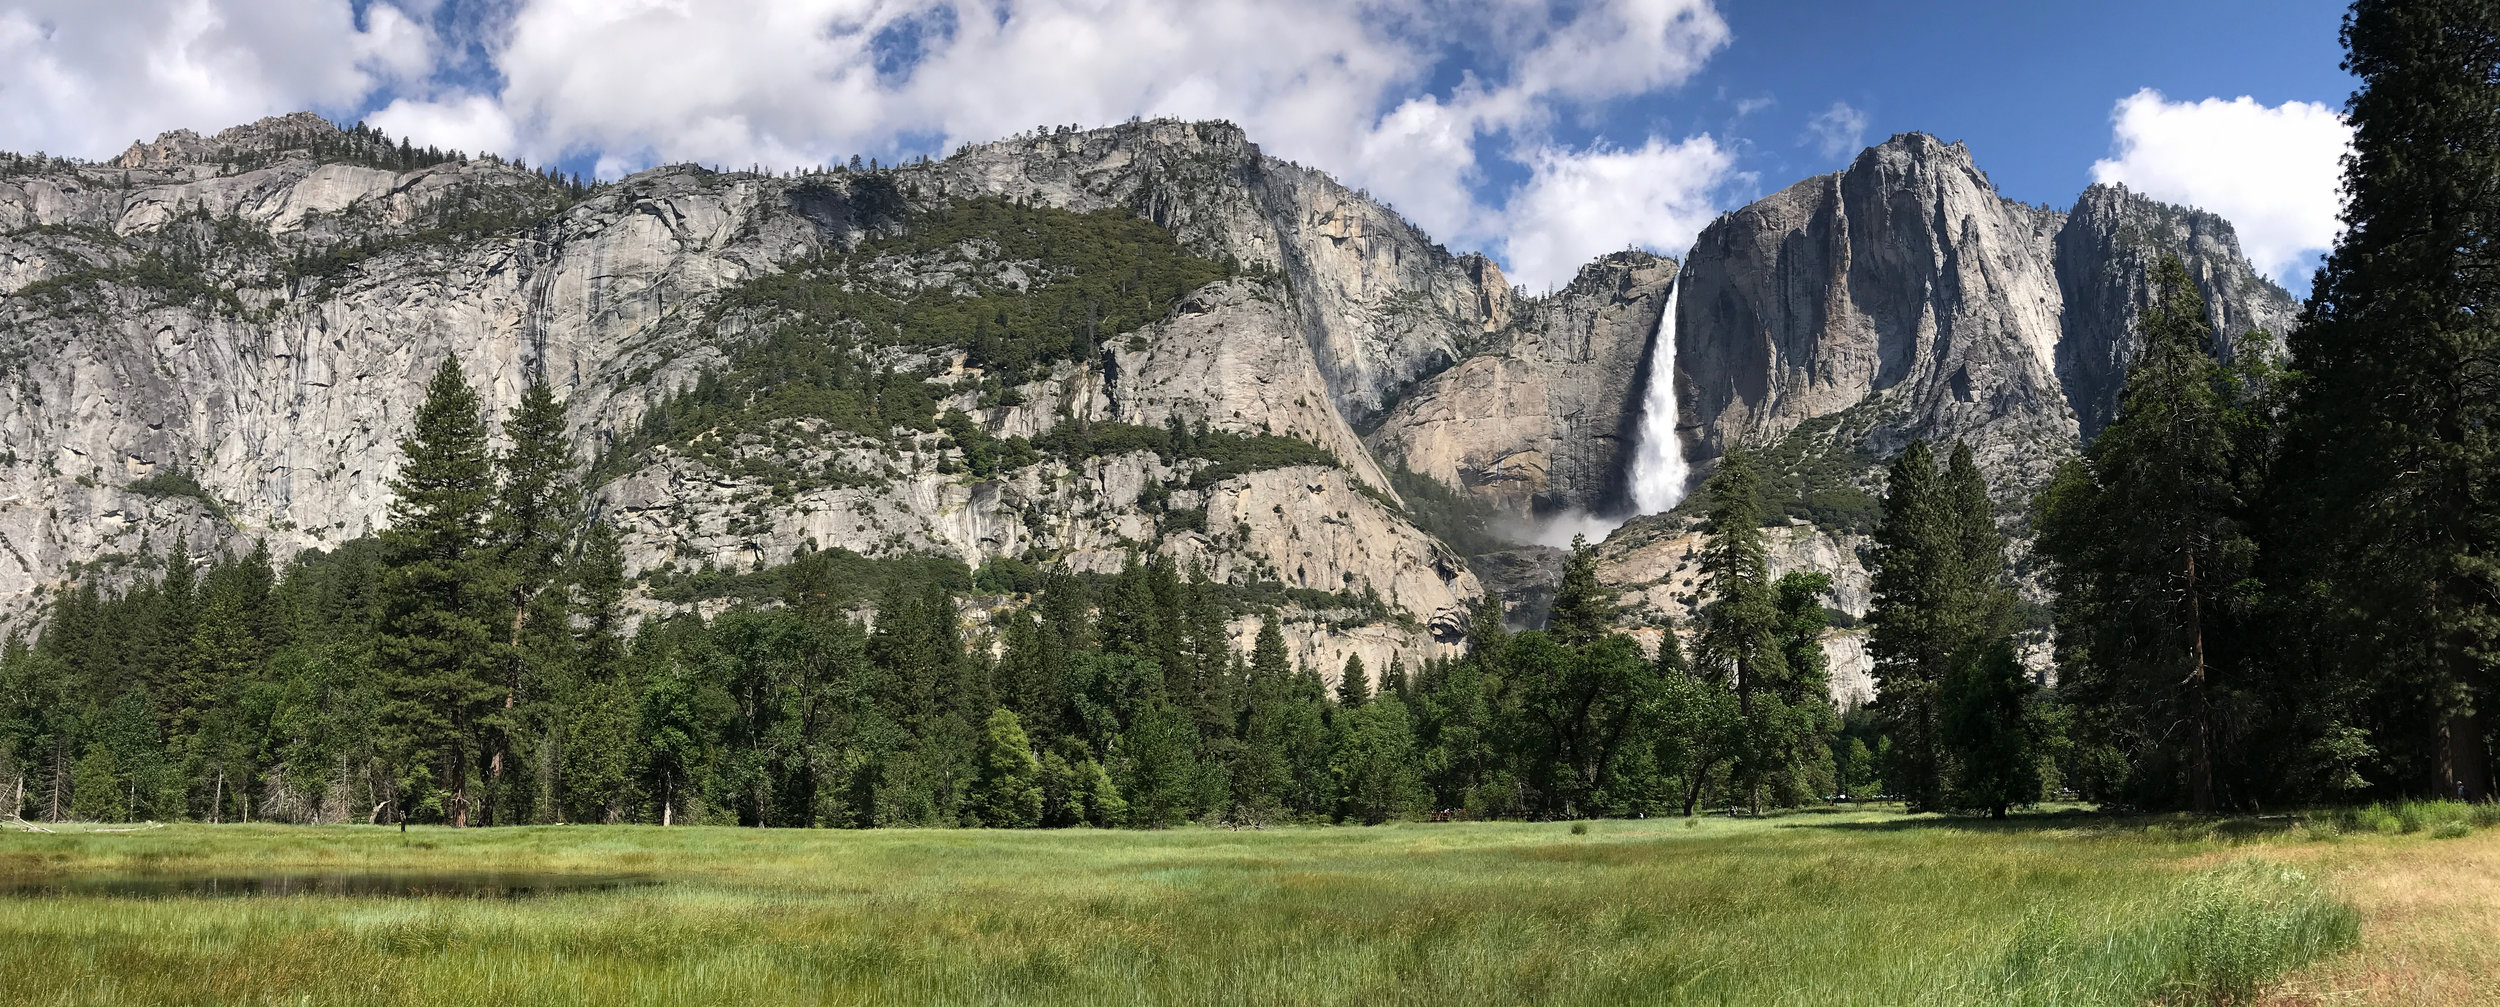 """ It is easier to feel than to realize, or in any way explain, Yosemite grandeur. The magnitude of the rocks and trees and streams are so delicately harmonized, they are mostly hidden. ""  —John Muir"